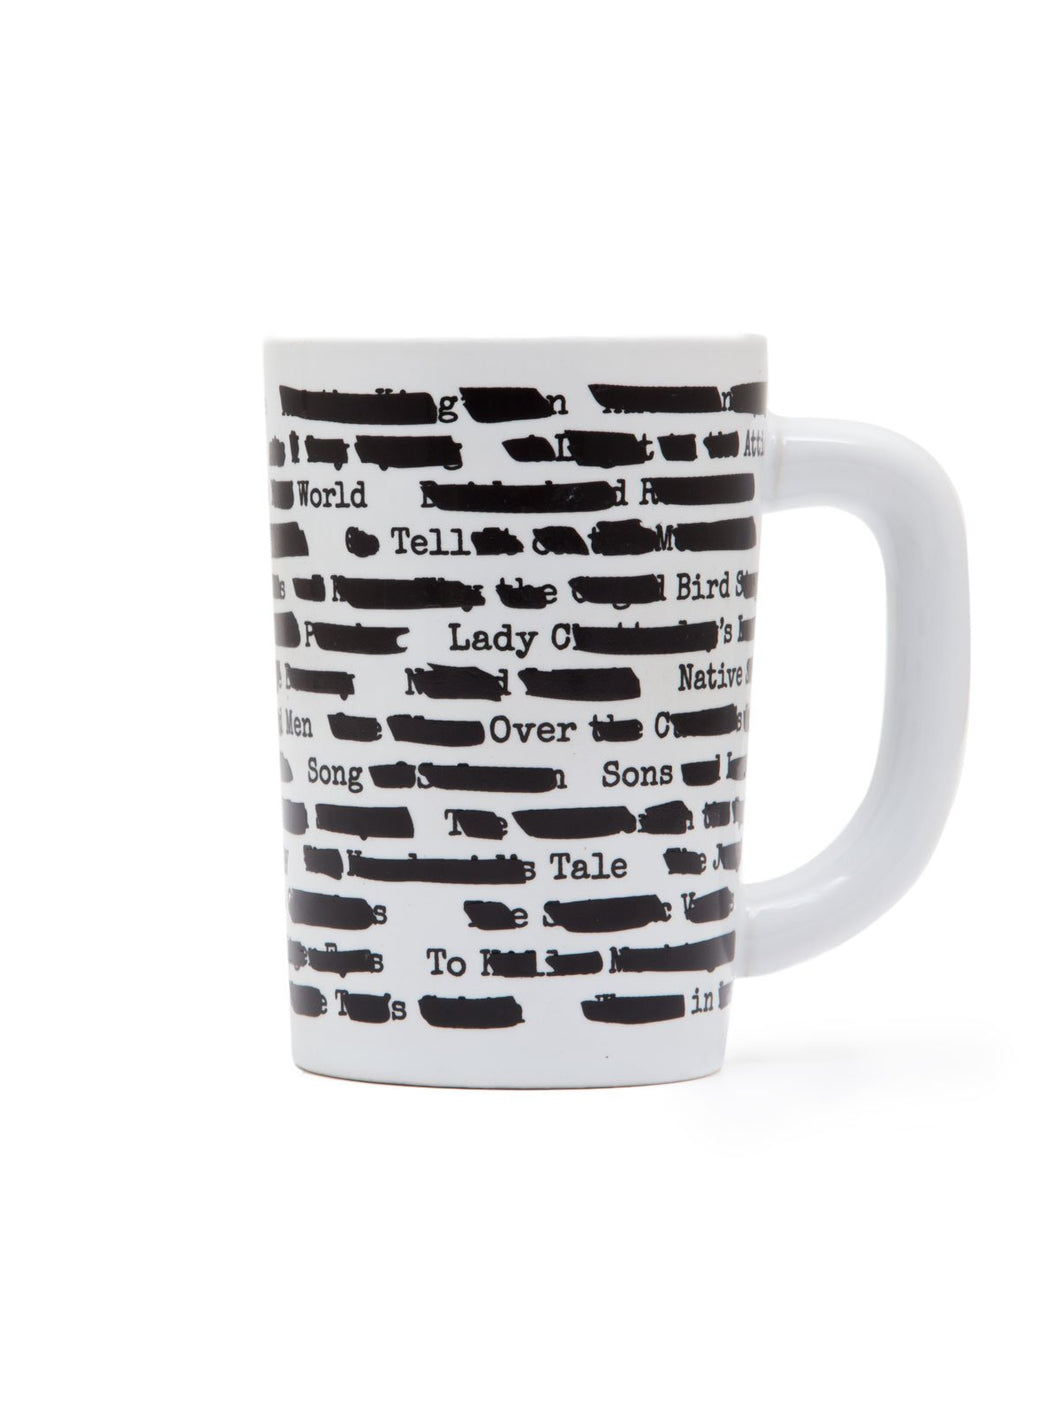 Banned Books Mug by Out of Print